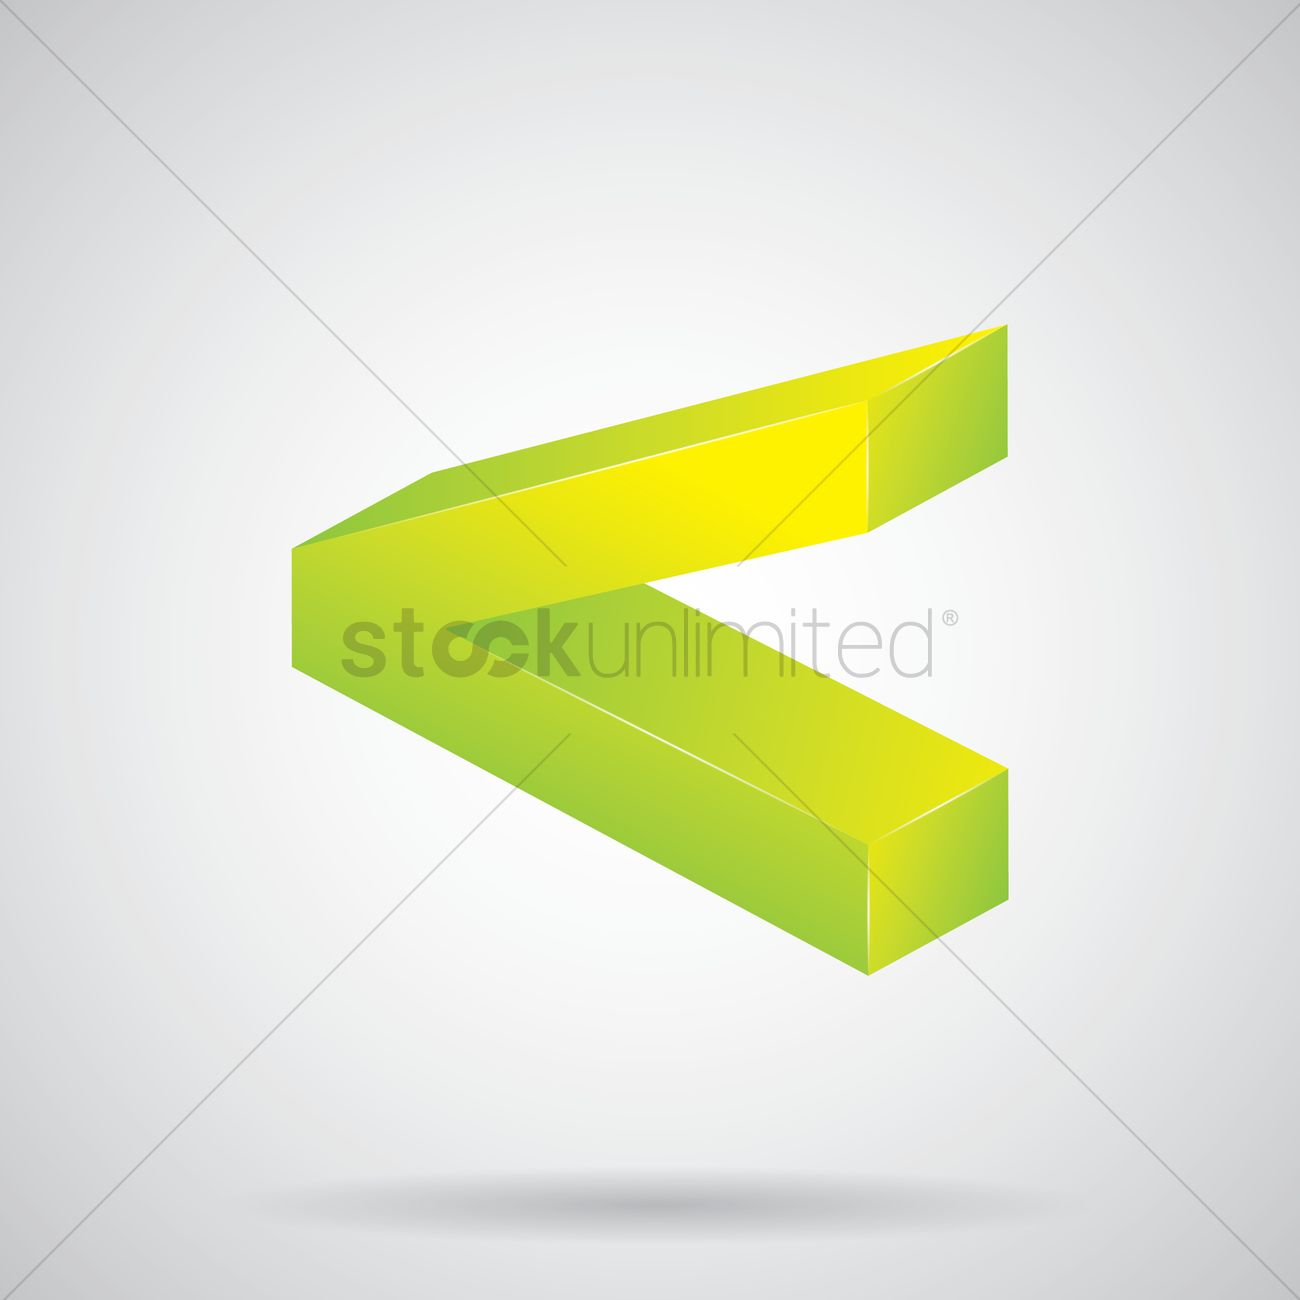 Less Than Sign Vector Image 1608948 Stockunlimited